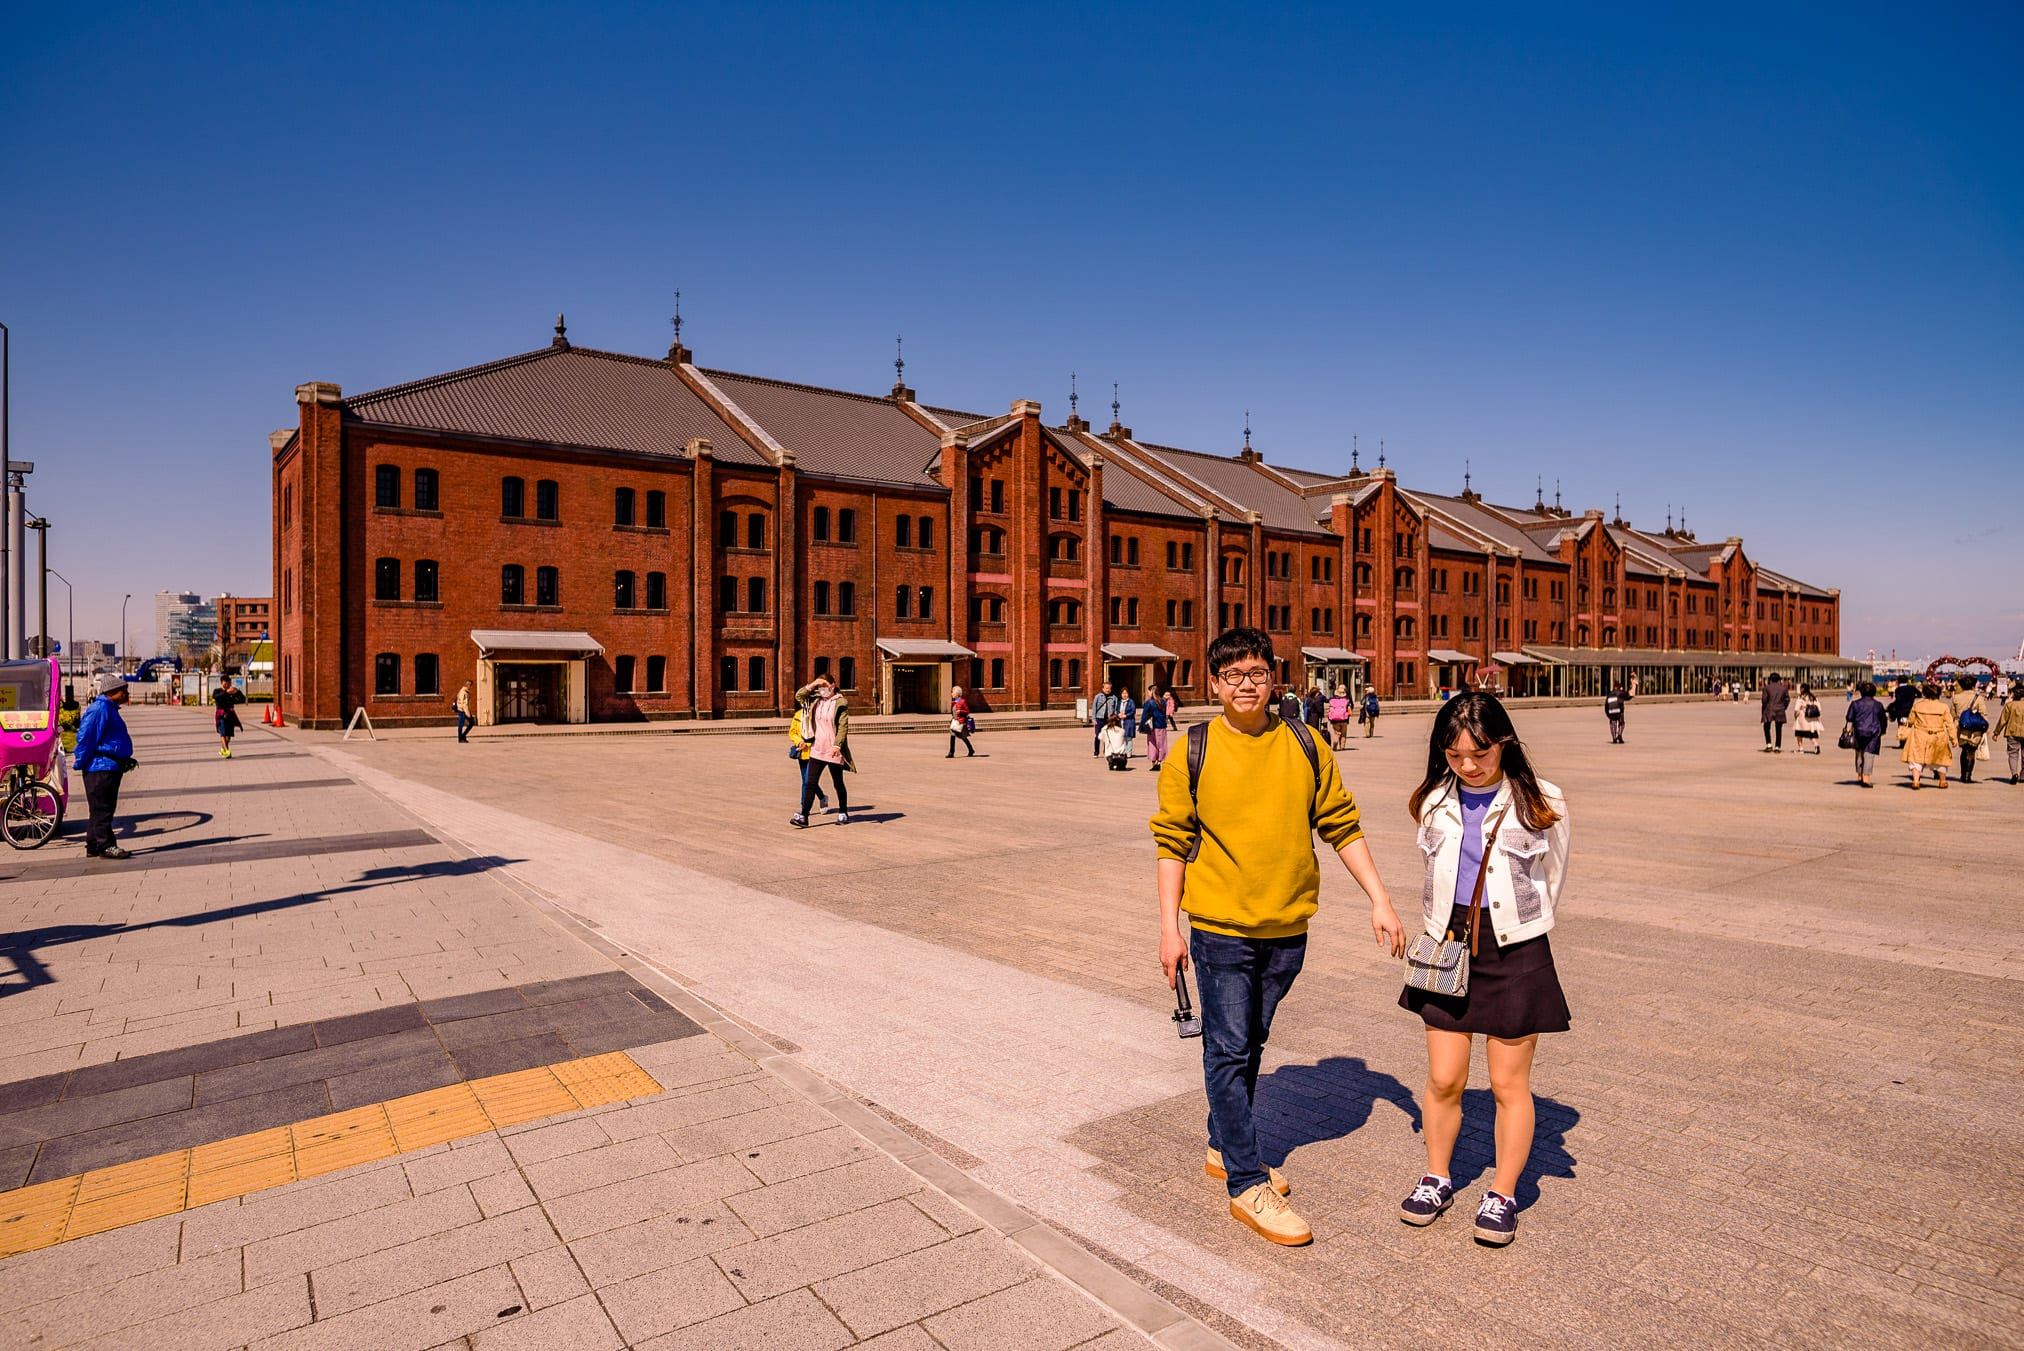 Couple photography in Yokohama at the Red Brick warehouses, images by the Tokyo Portrait Photographer Cristian Bucur